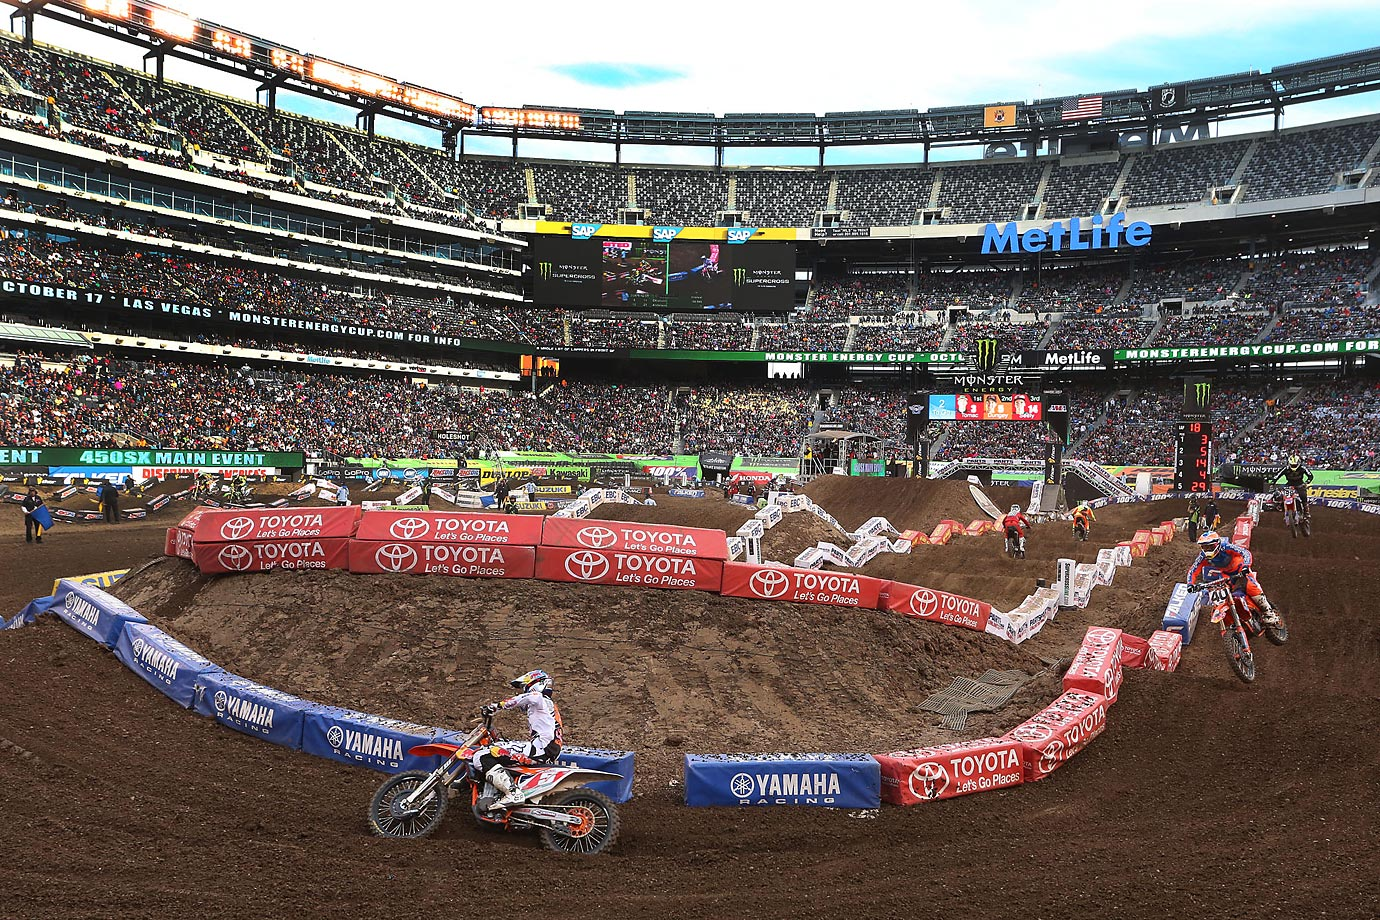 Dungey maneuvers his KTM bike in one of the turns.